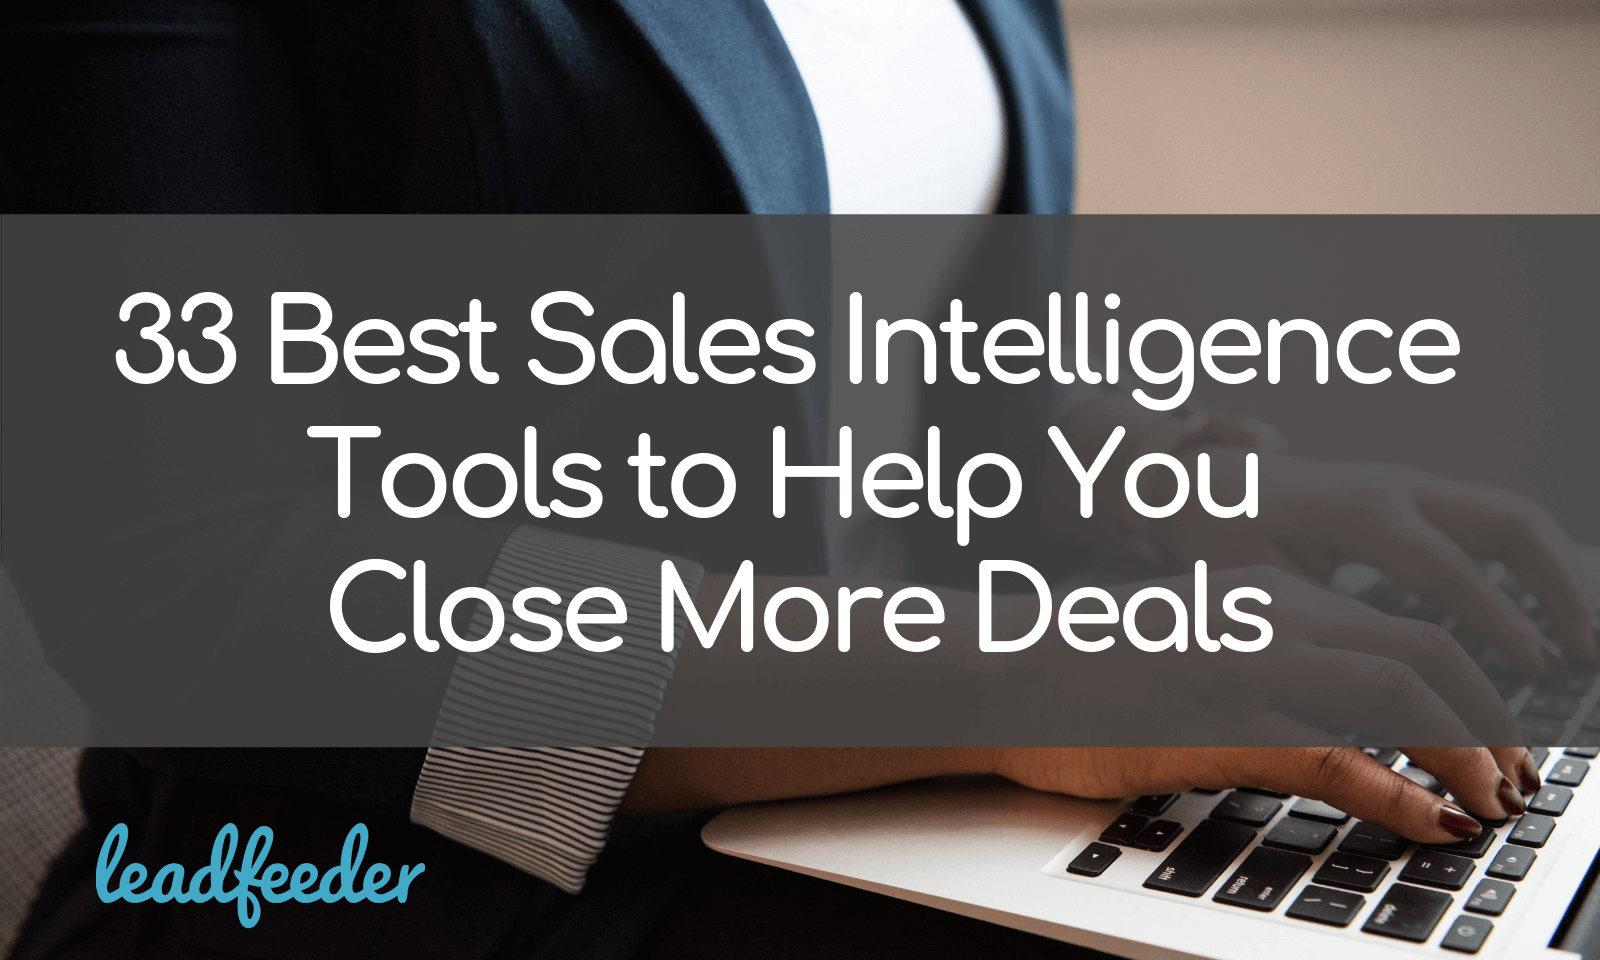 33 Best Sales Intelligence Tools to Help You Close More Deals